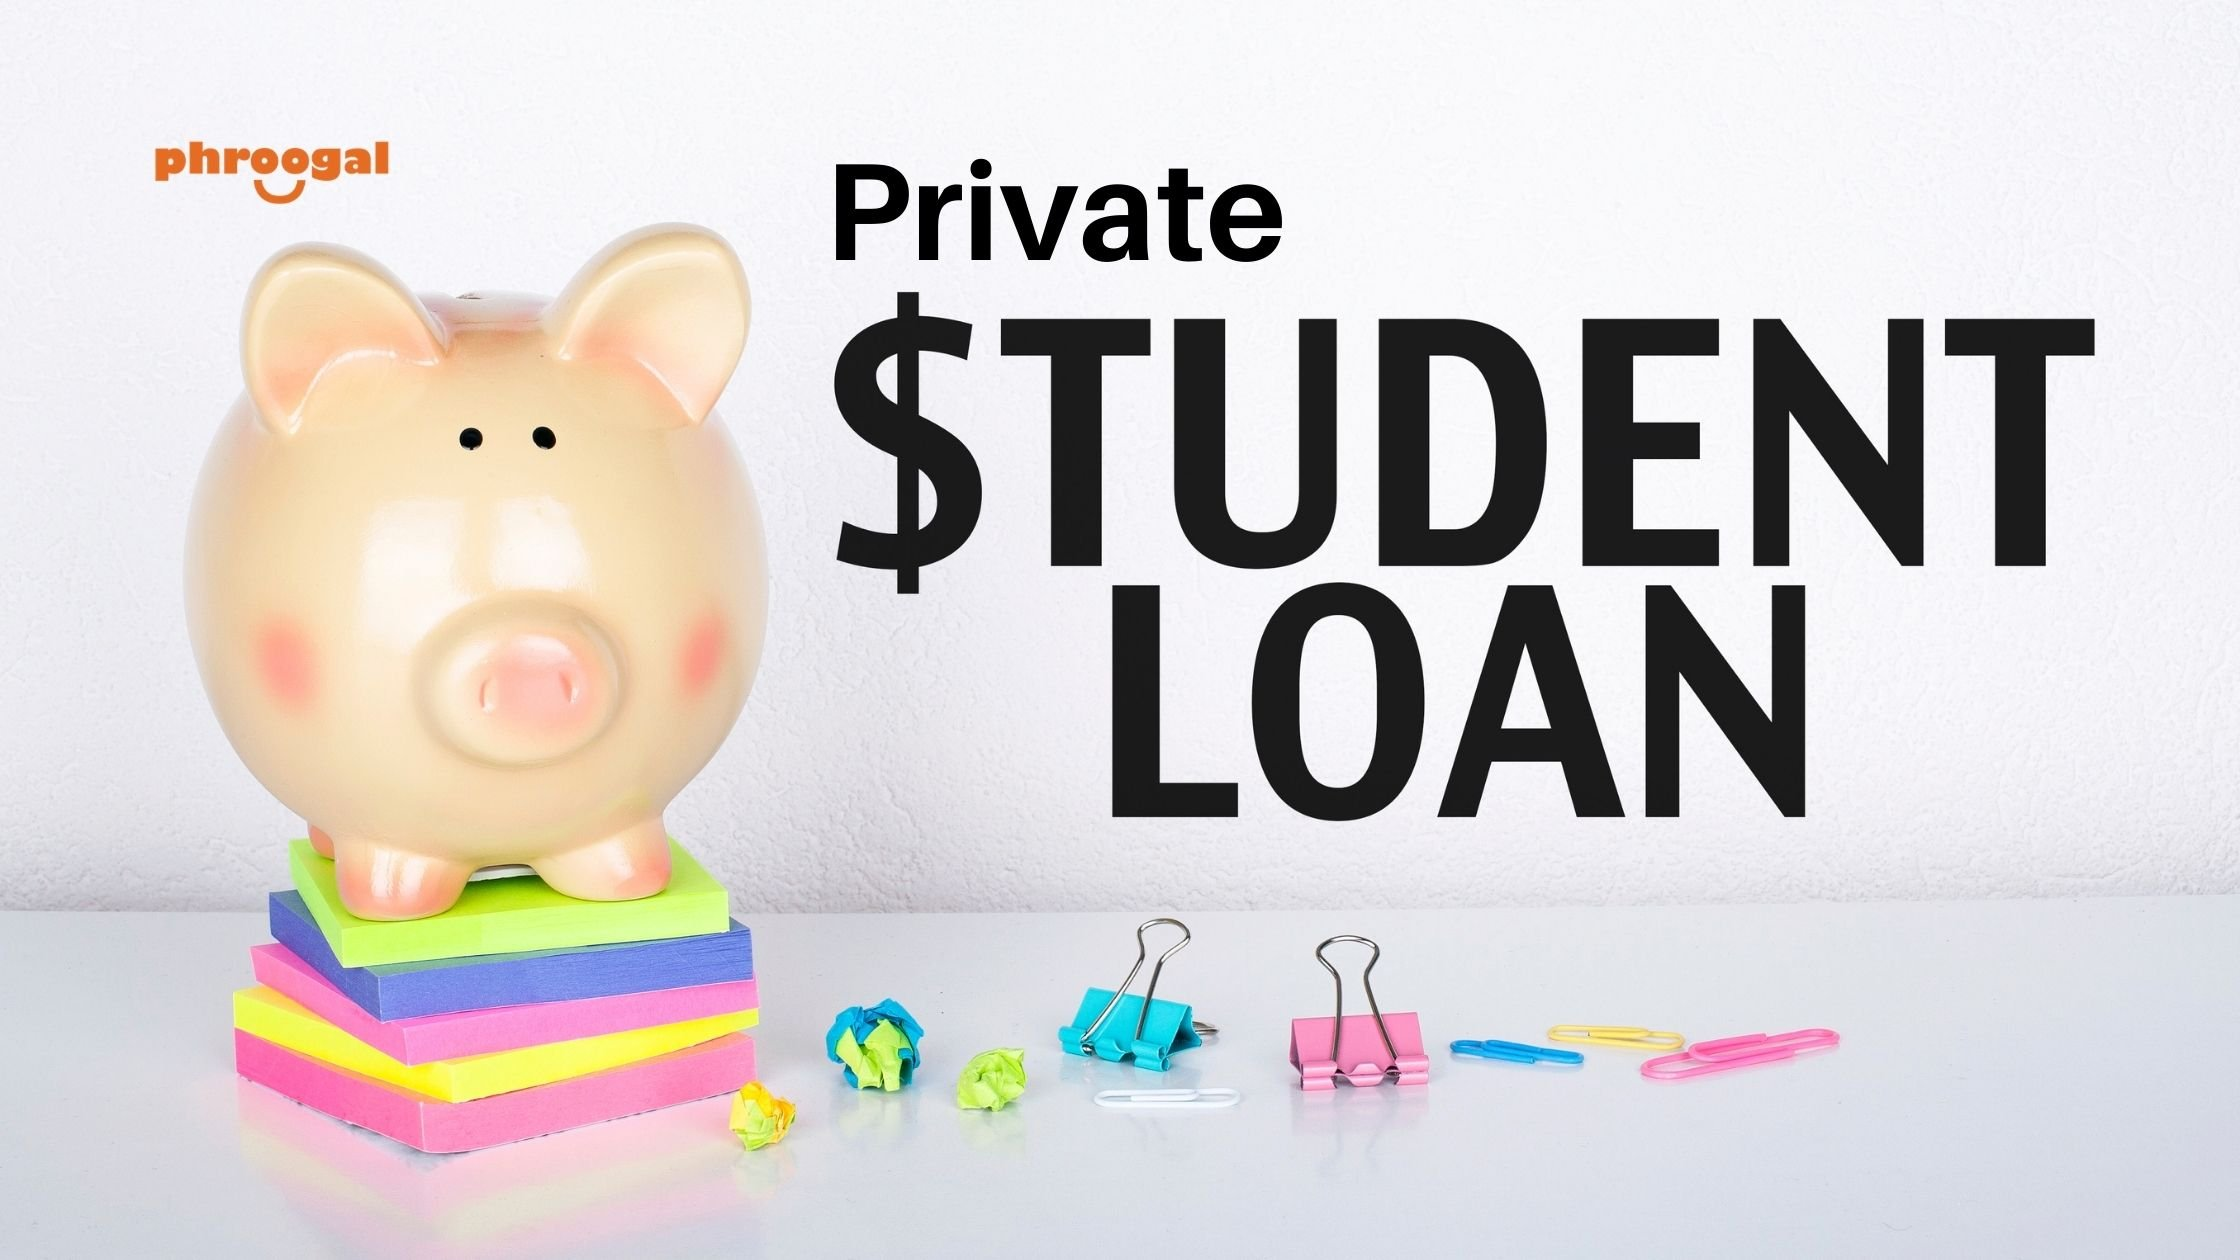 Find and Apply for Private Student Loans phroogal